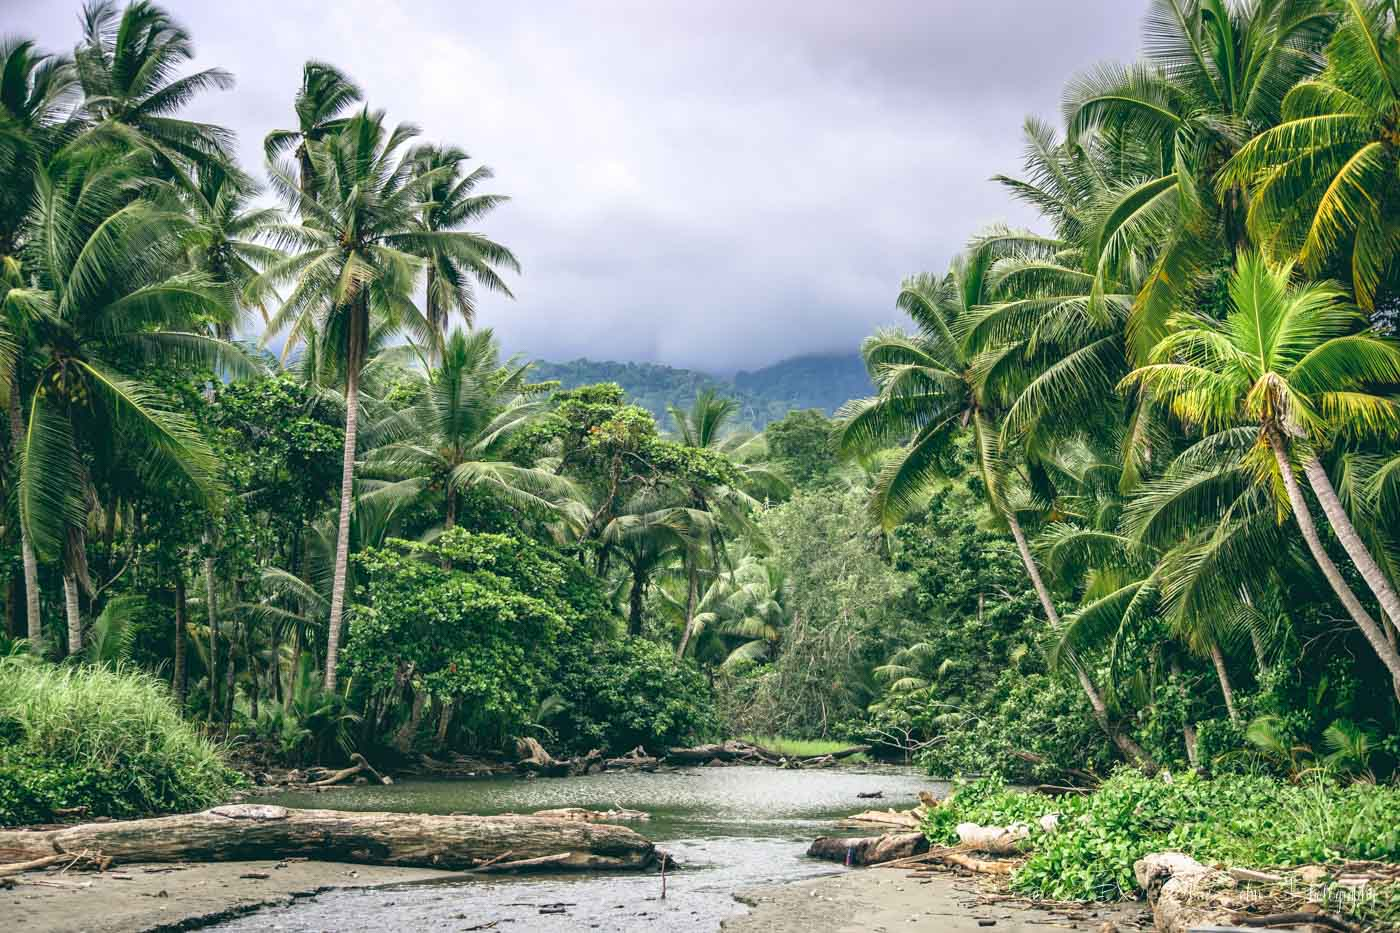 The great jungle of Costa Rica